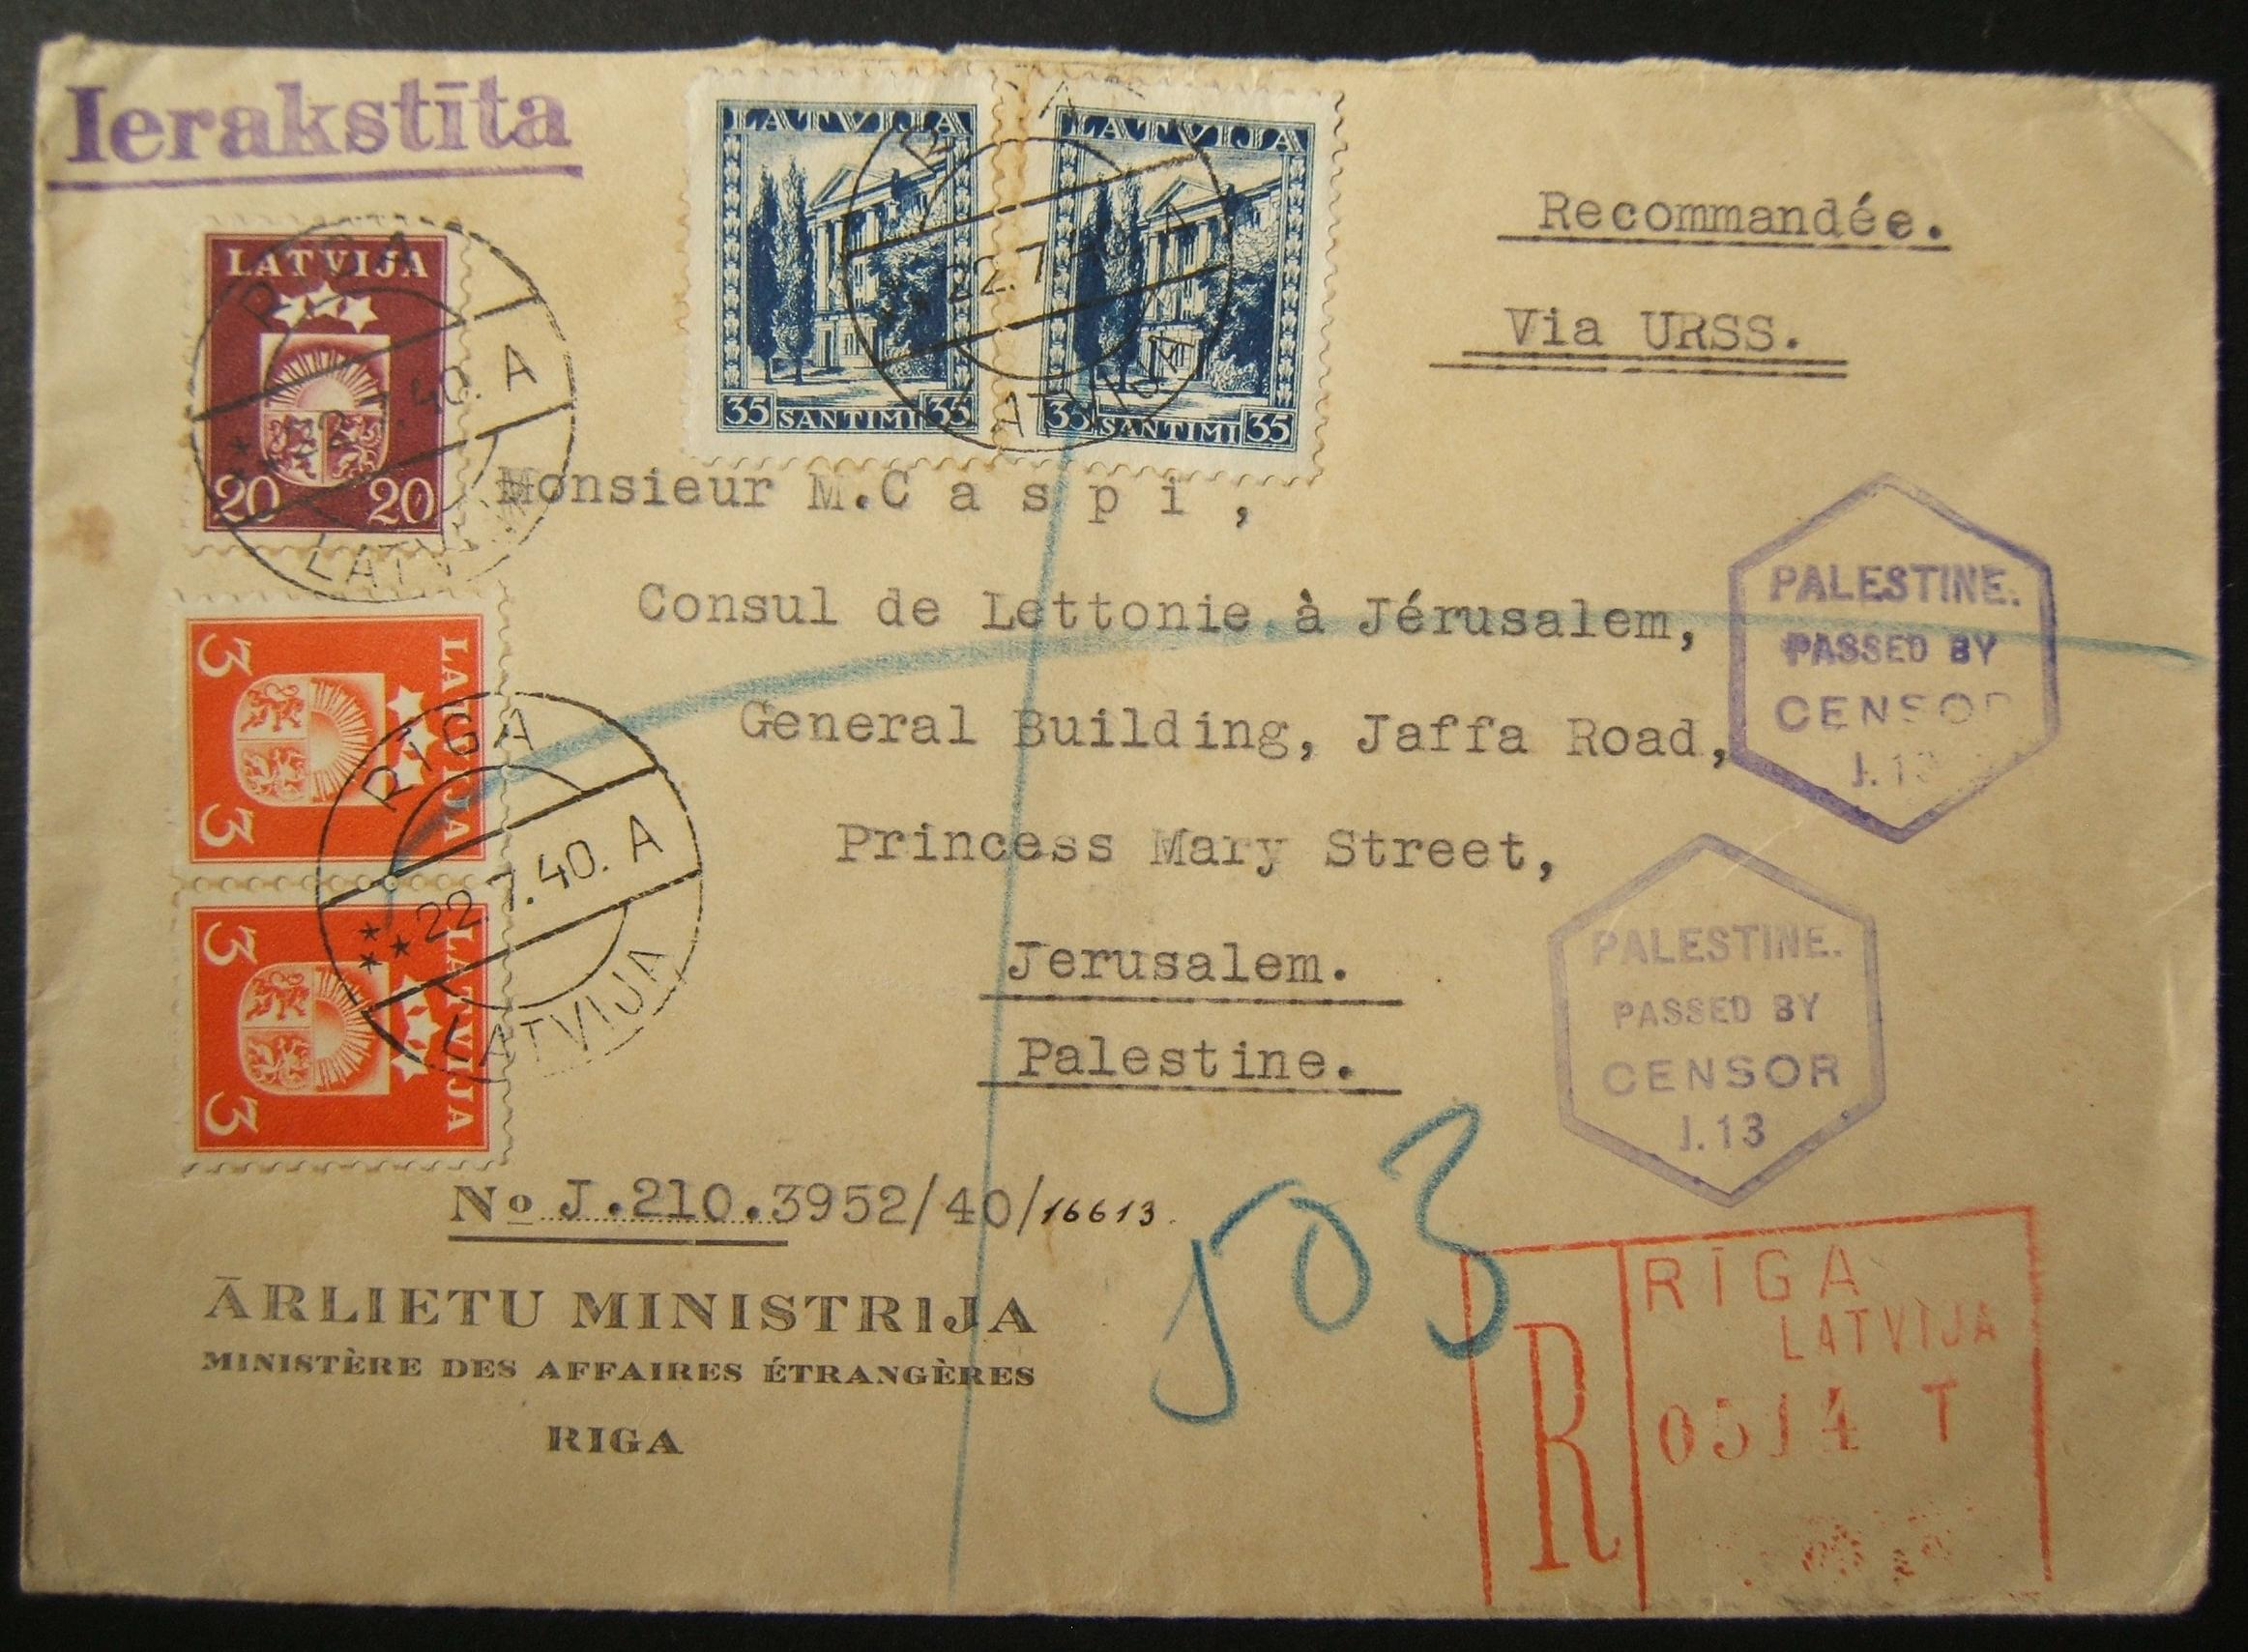 7/1940 WWII 1st day mail from Latvian SSR foreign ministry to consul consal in JERUSALEM